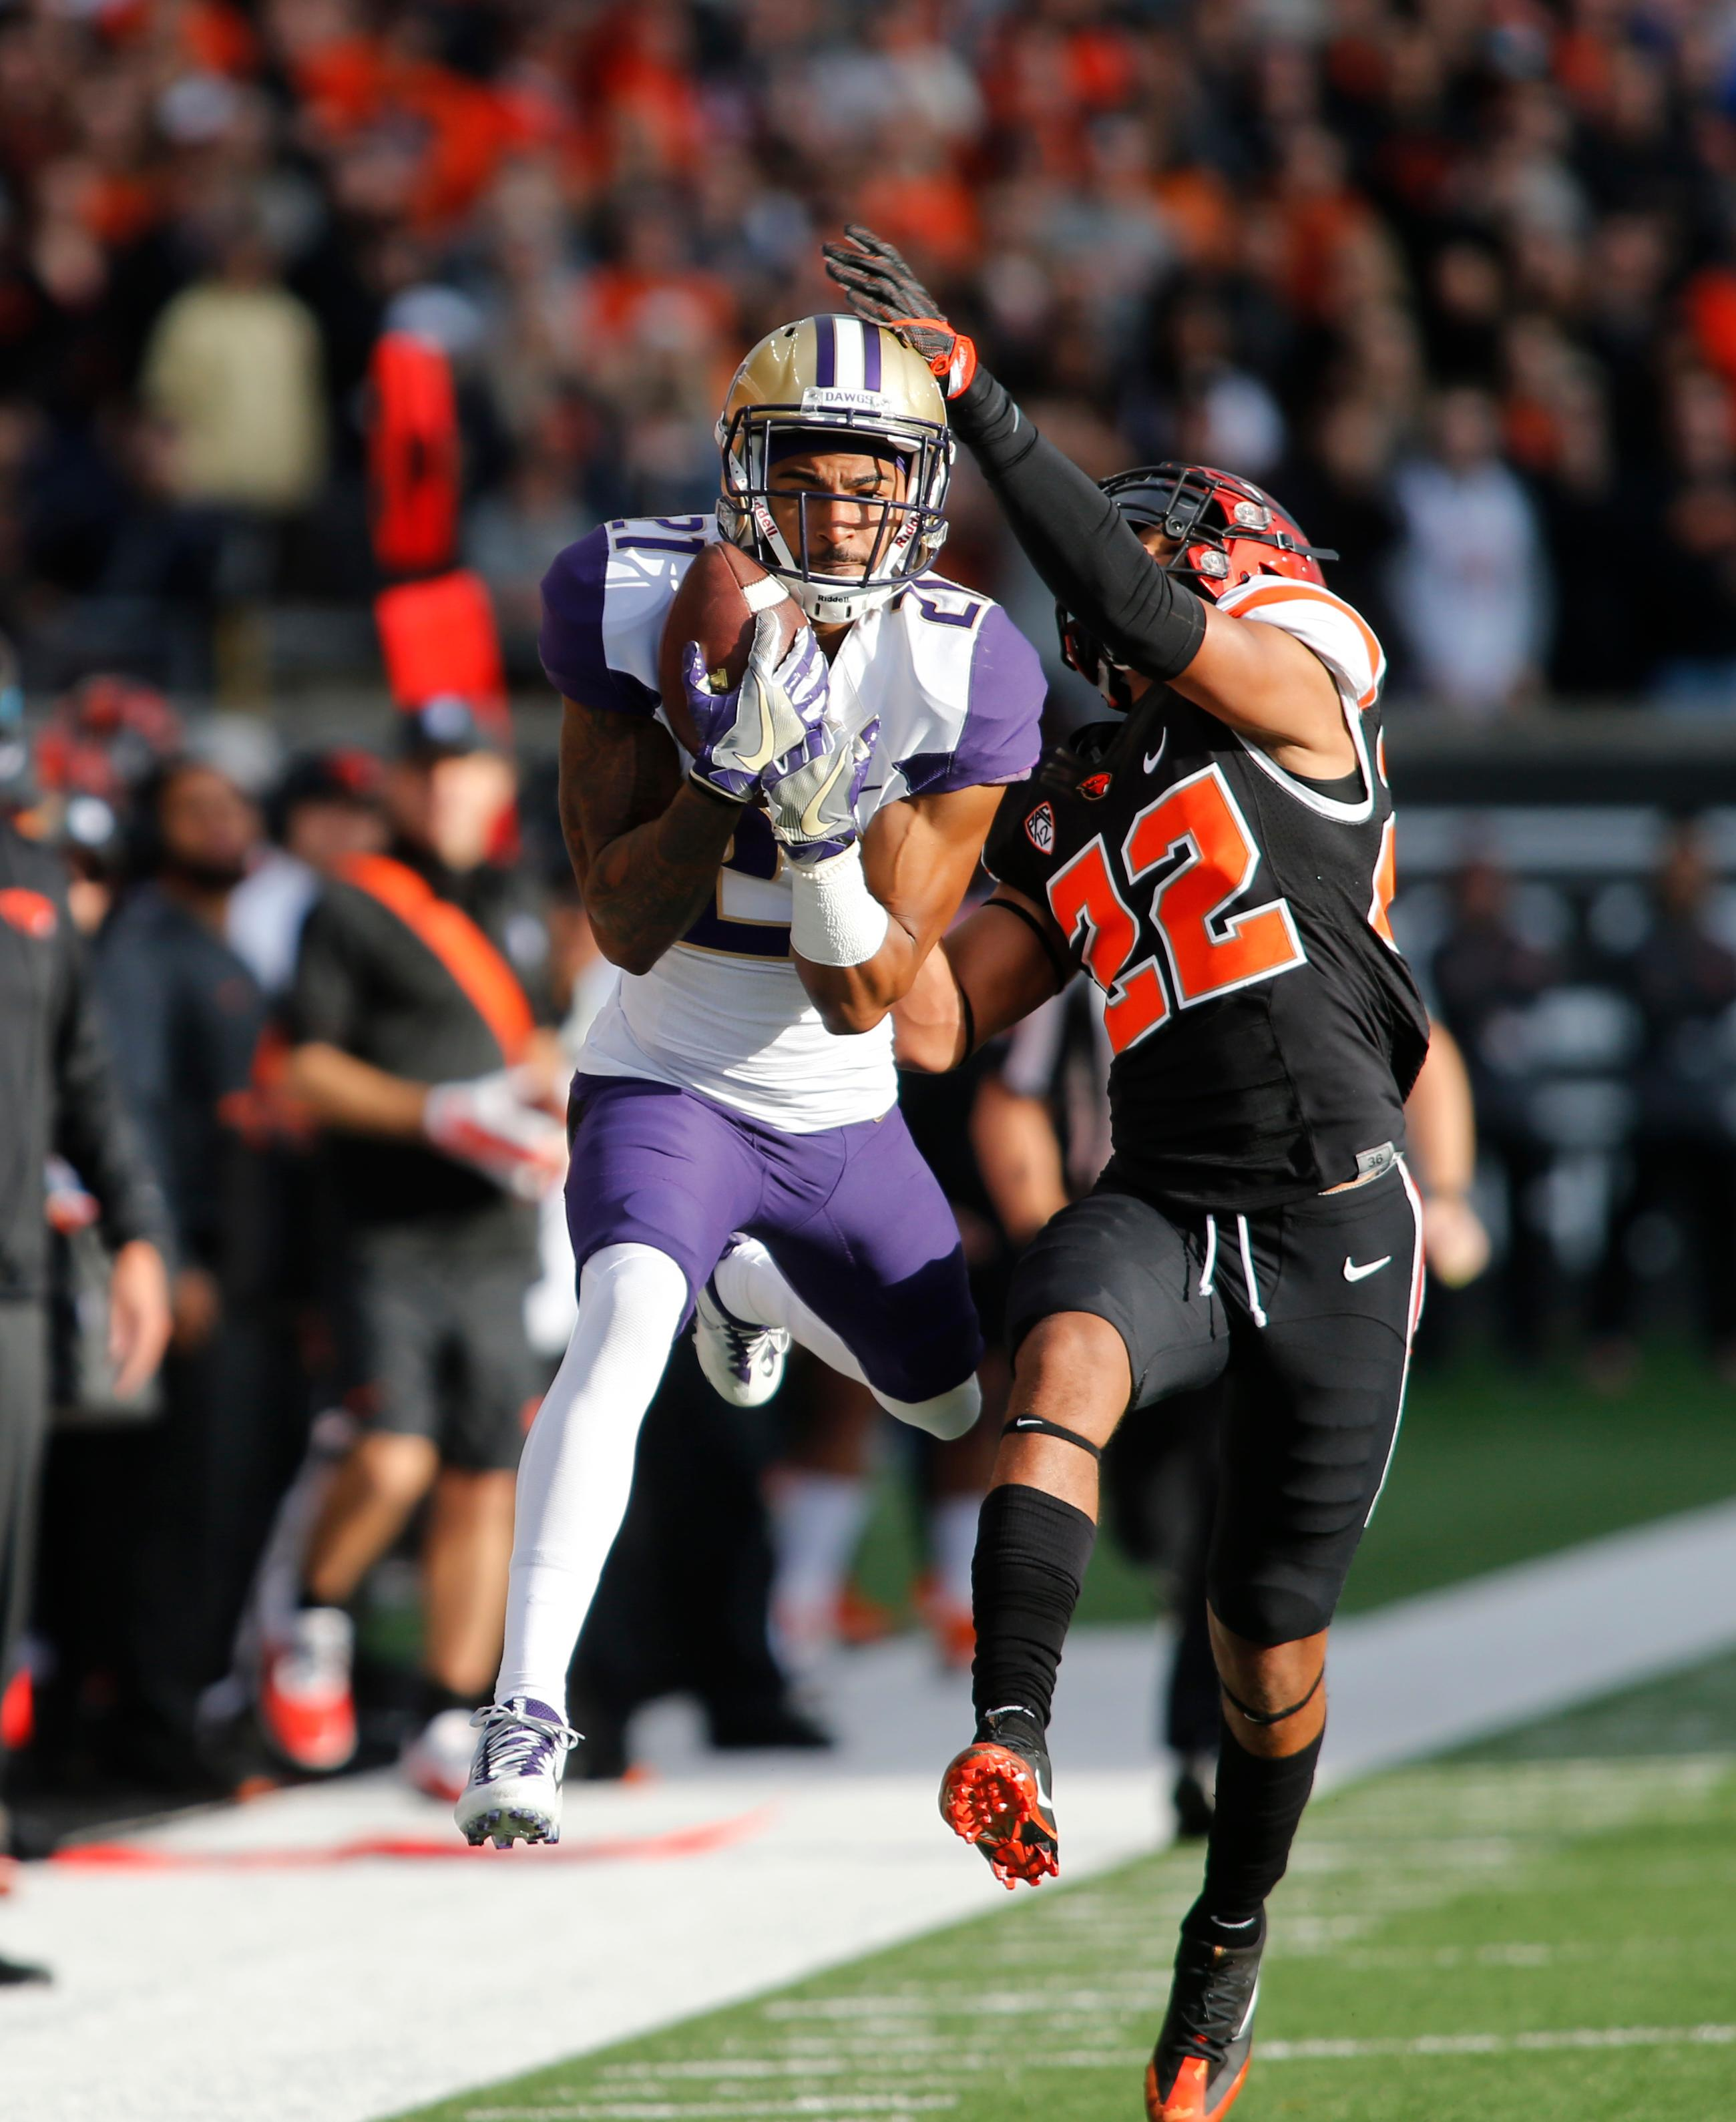 Washington wide receiver Quinten Pounds (21) makes a catch while being defended by Oregon State's Isaiah Dunn in the first half of an NCAA college football game, in Corvallis, Ore., Saturday, Sept. 30, 2017. (AP Photo/Timothy J. Gonzalez)